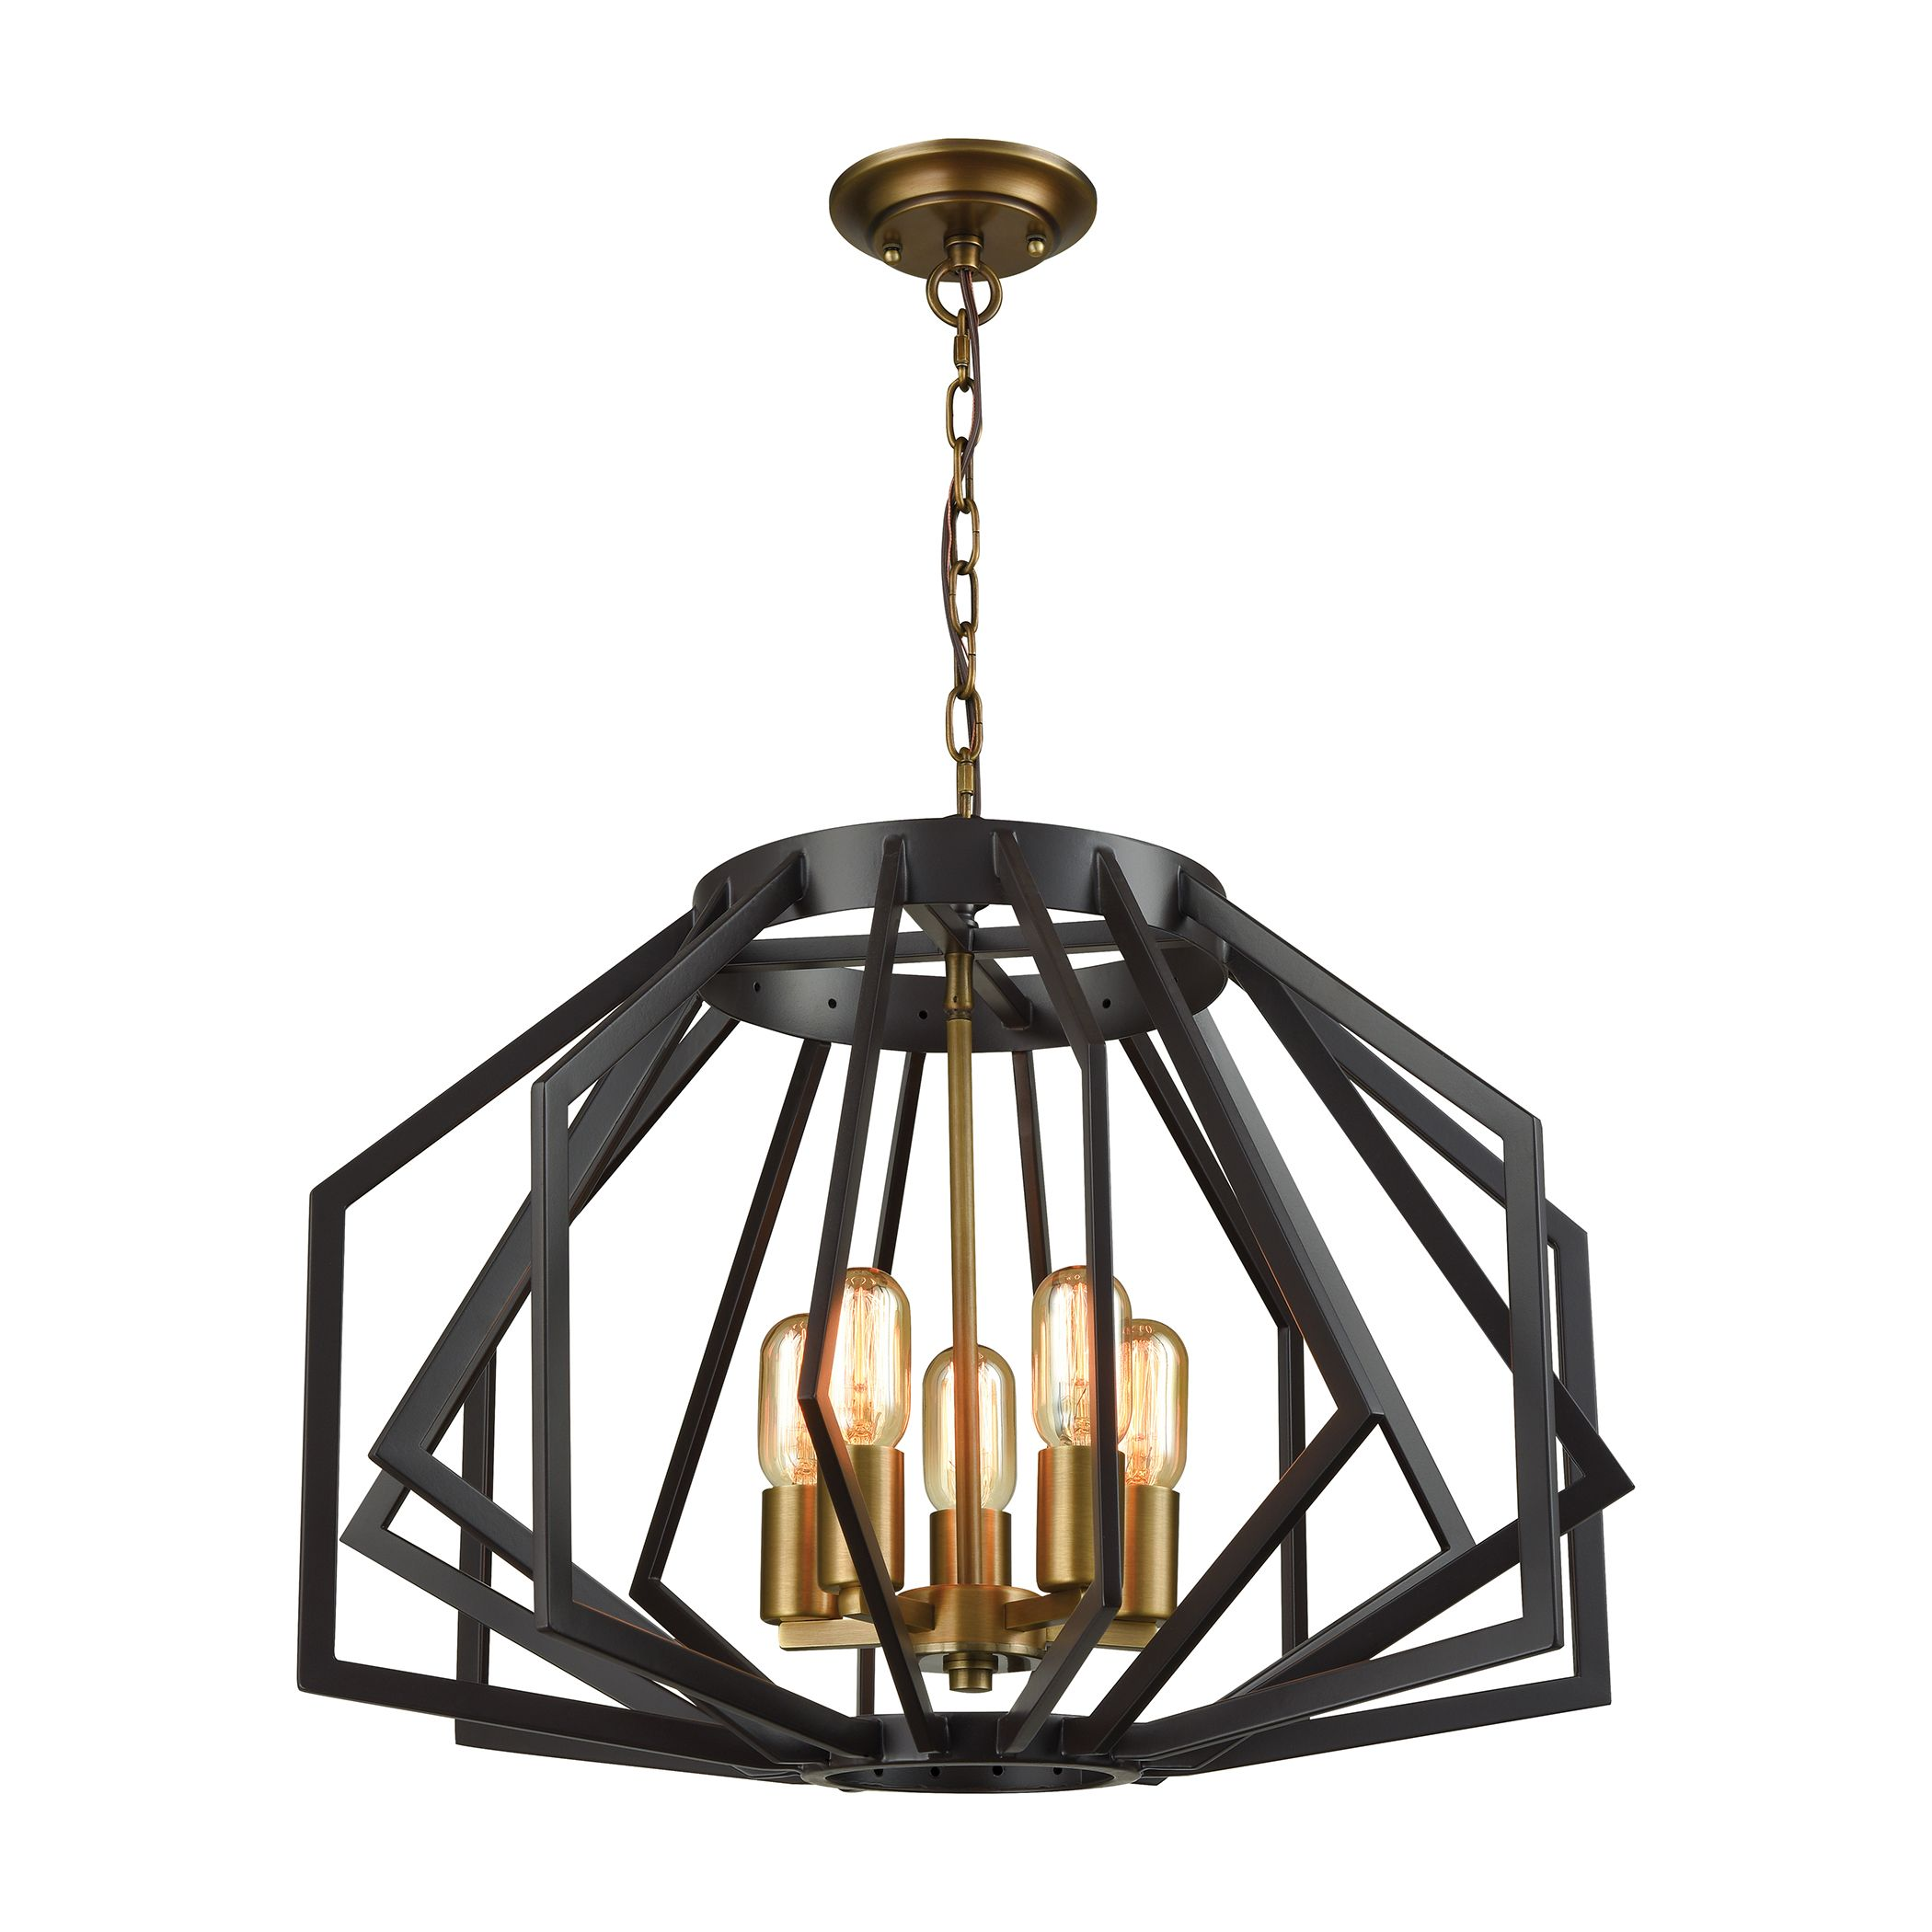 Find this Pin and more on DIMOND LIGHTING    EXCLUSIVES.  sc 1 st  Pinterest & dimondlighting #Fluxx #Chandelier #Geometricchic #BeBold ... azcodes.com